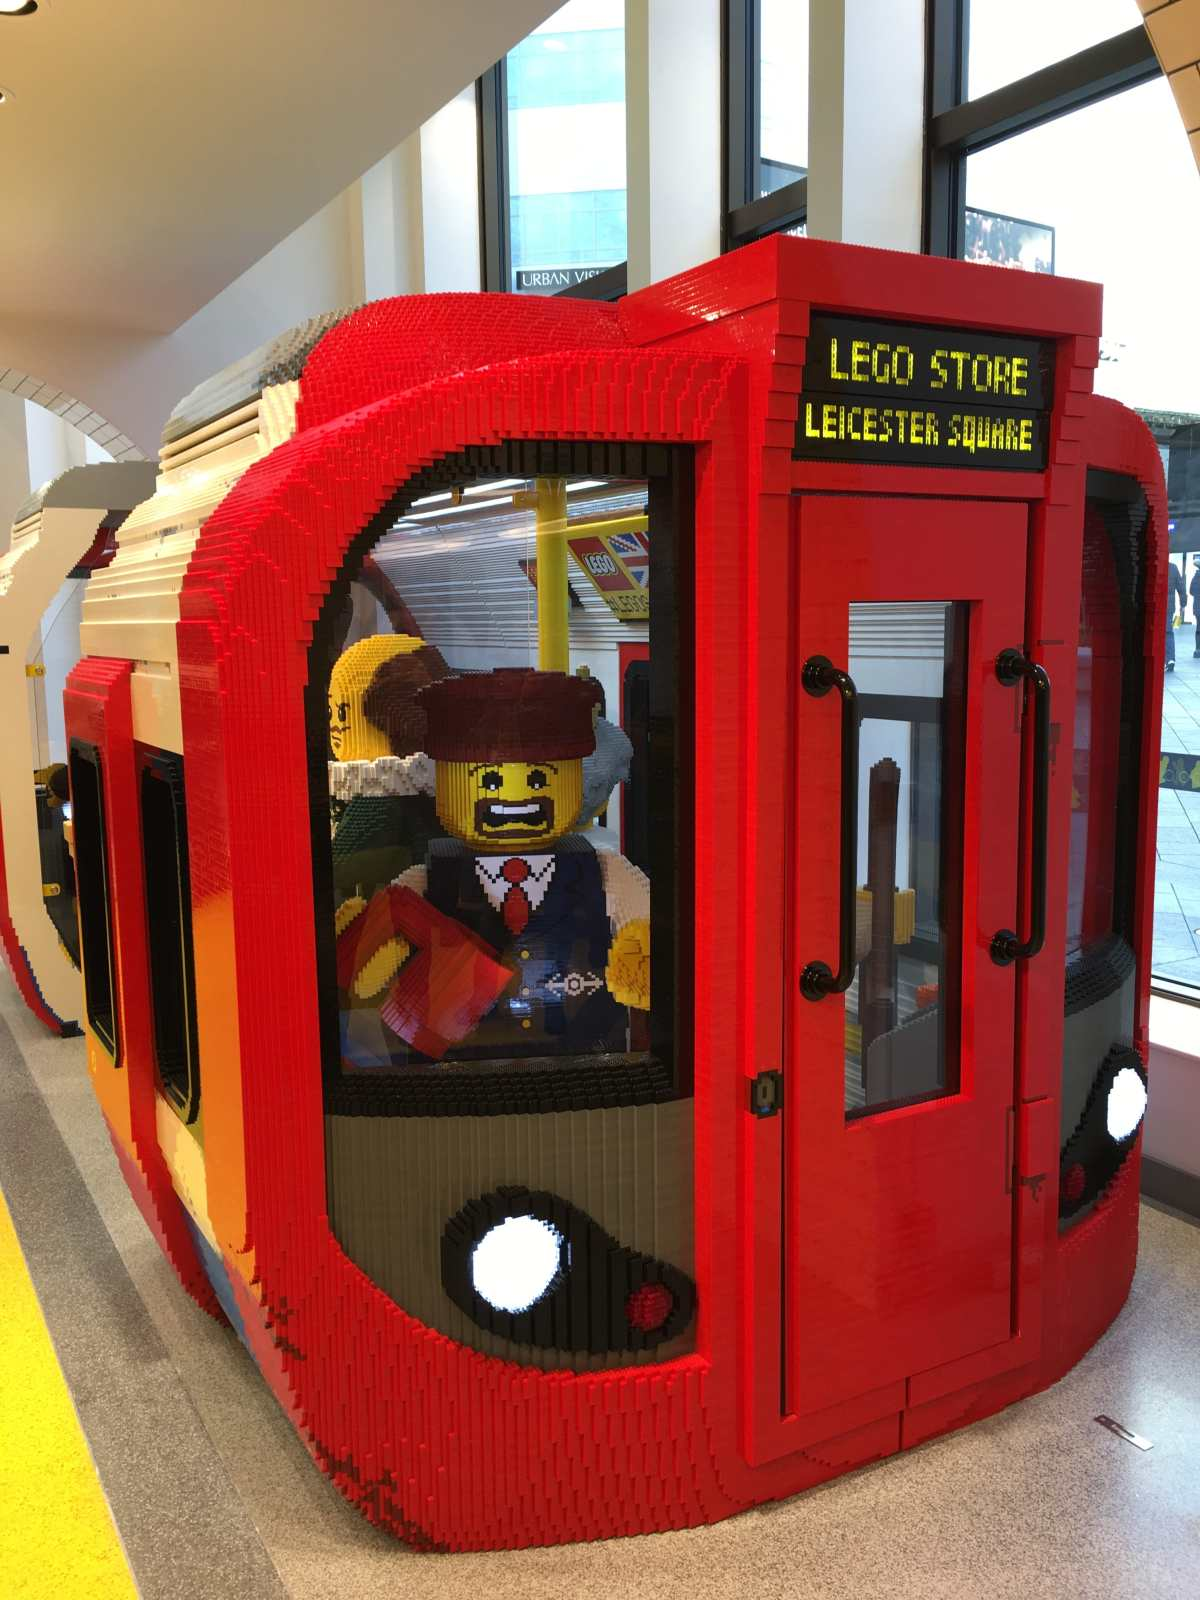 metro, tube, lego, jouet, toy, london